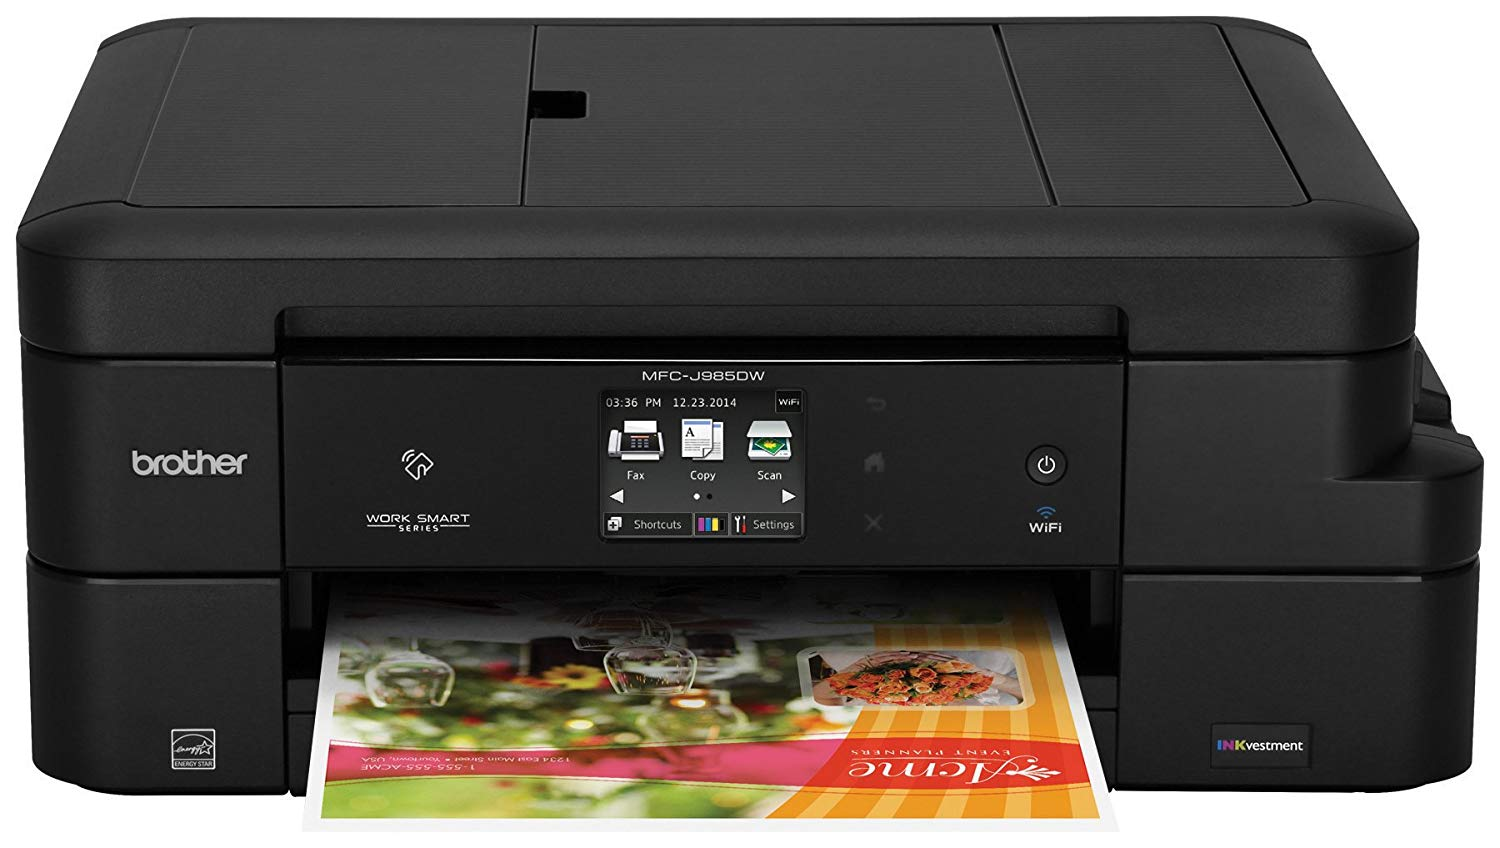 1 Brother The Best Photo Printers of 2019 - FilterGrade